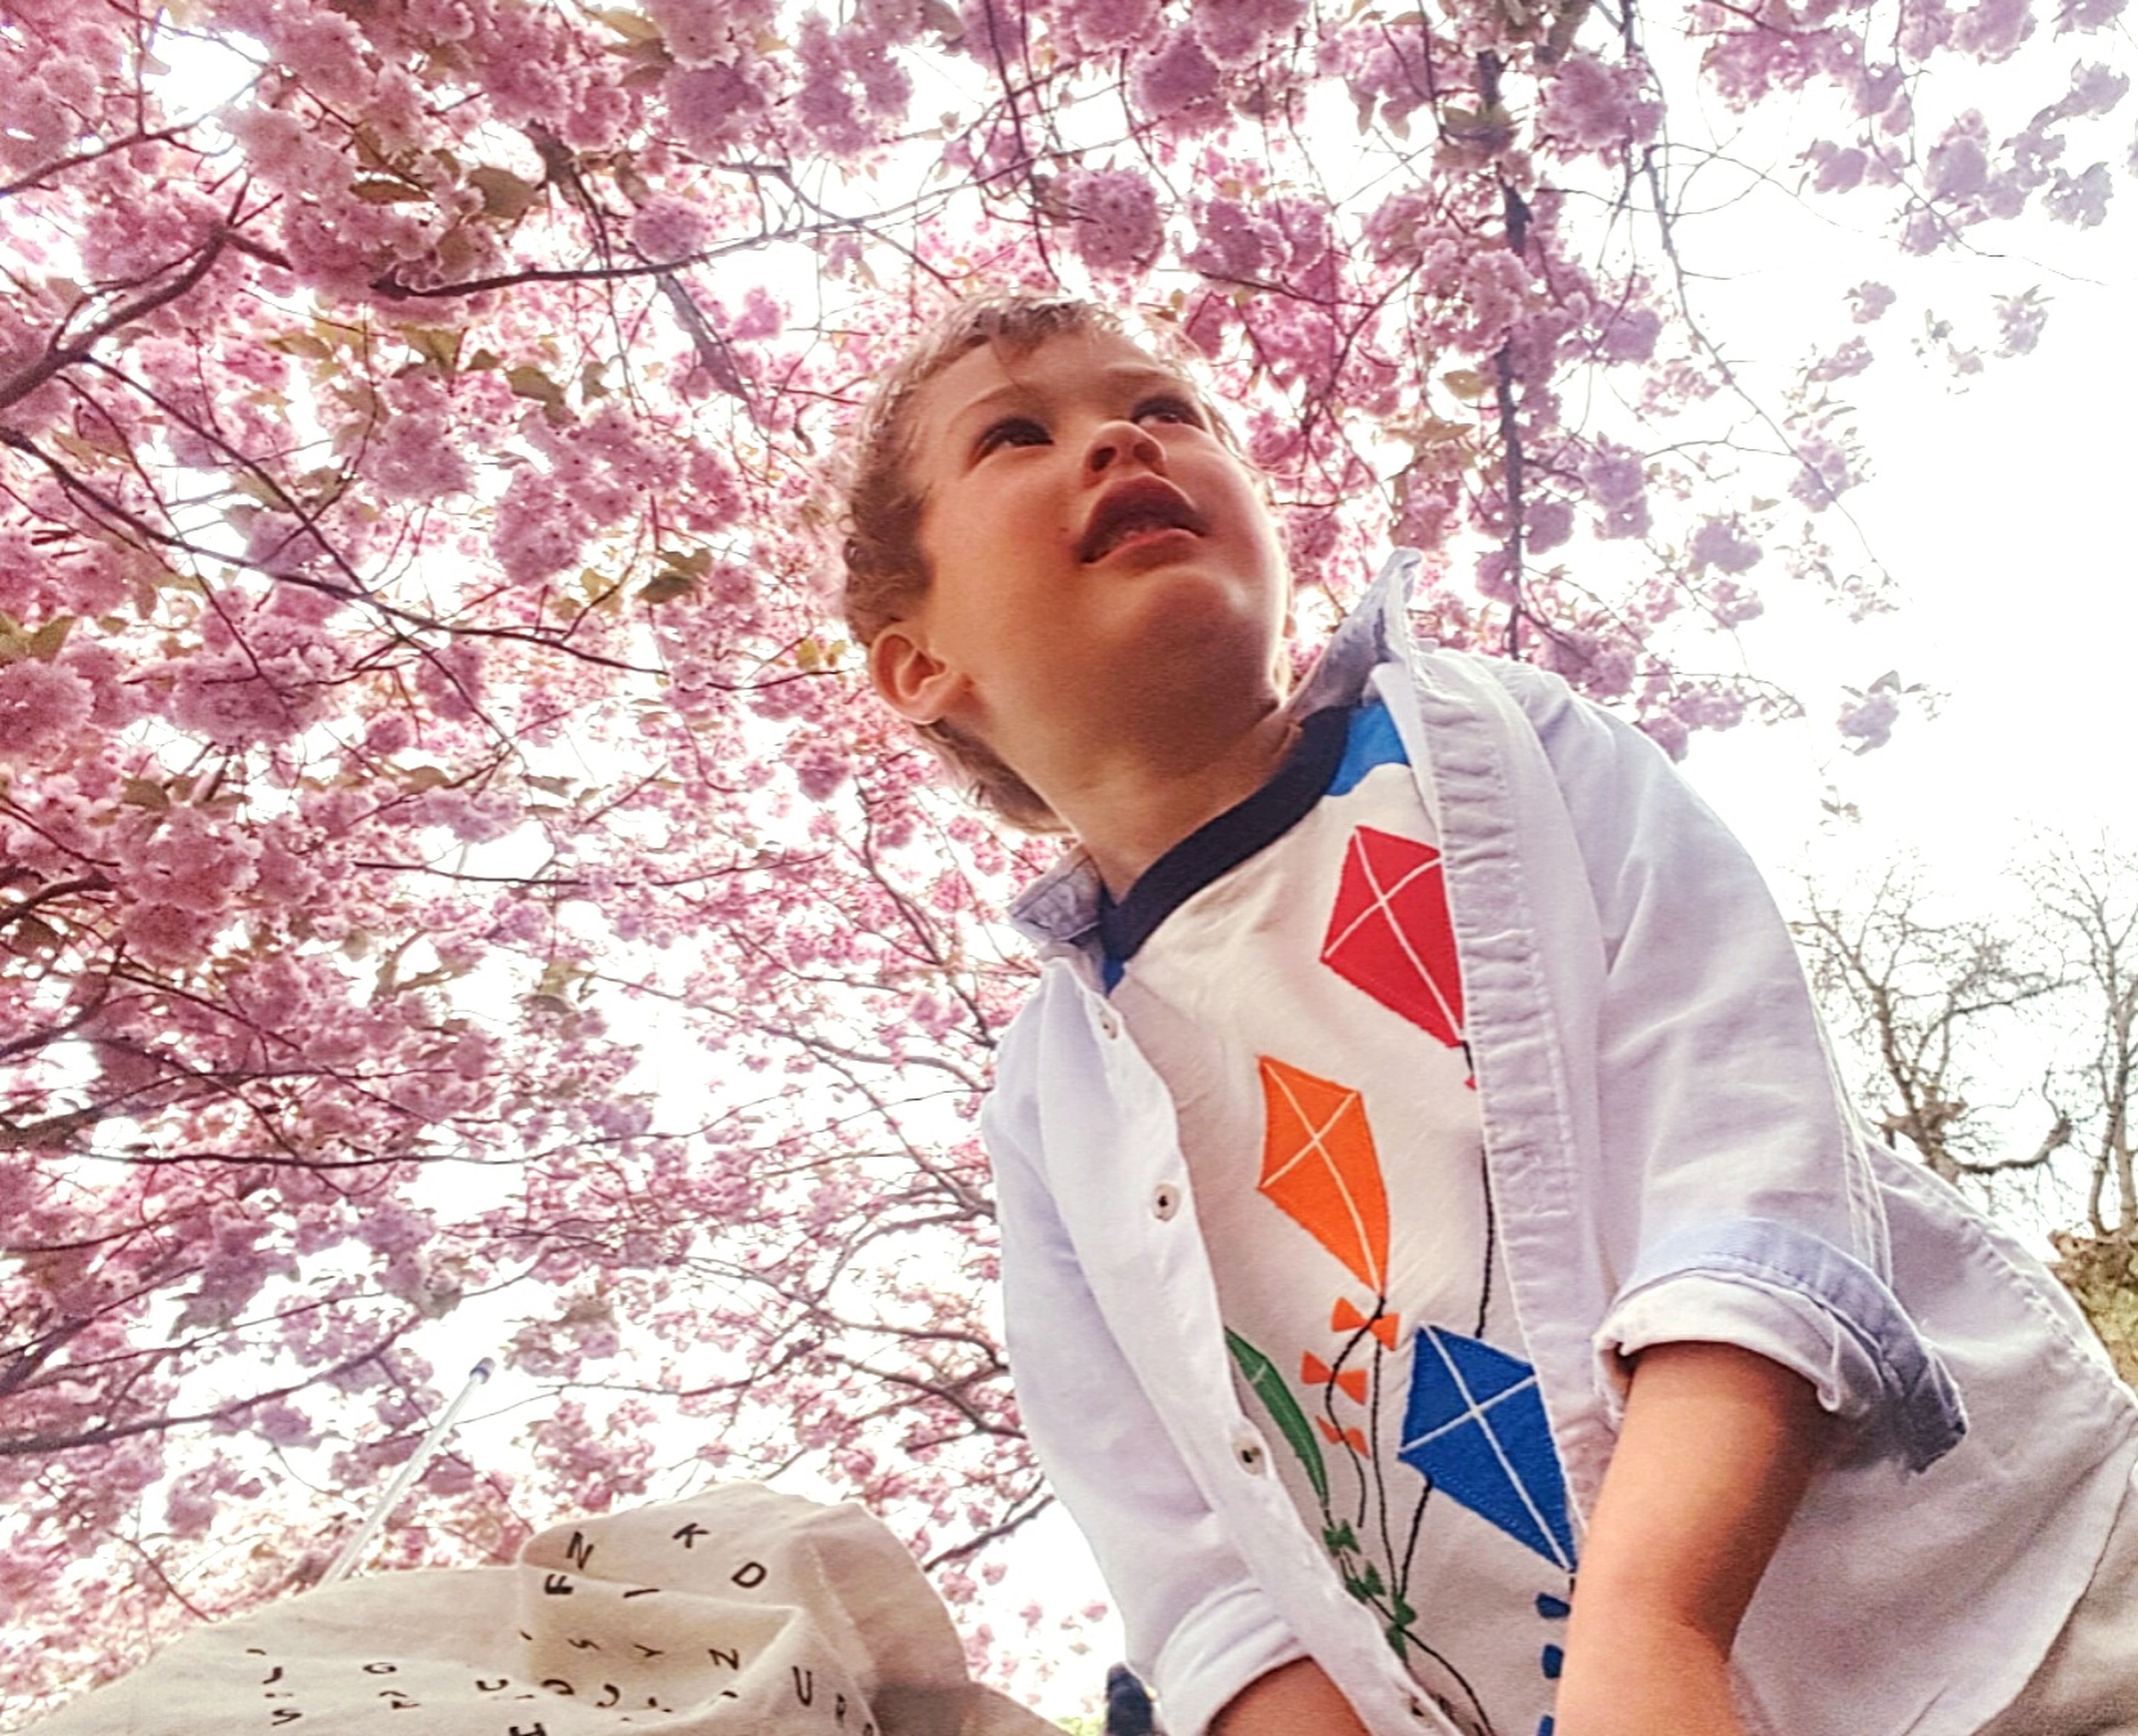 person, tree, lifestyles, leisure activity, casual clothing, childhood, looking at camera, young adult, elementary age, portrait, girls, three quarter length, park - man made space, front view, low angle view, smiling, standing, branch